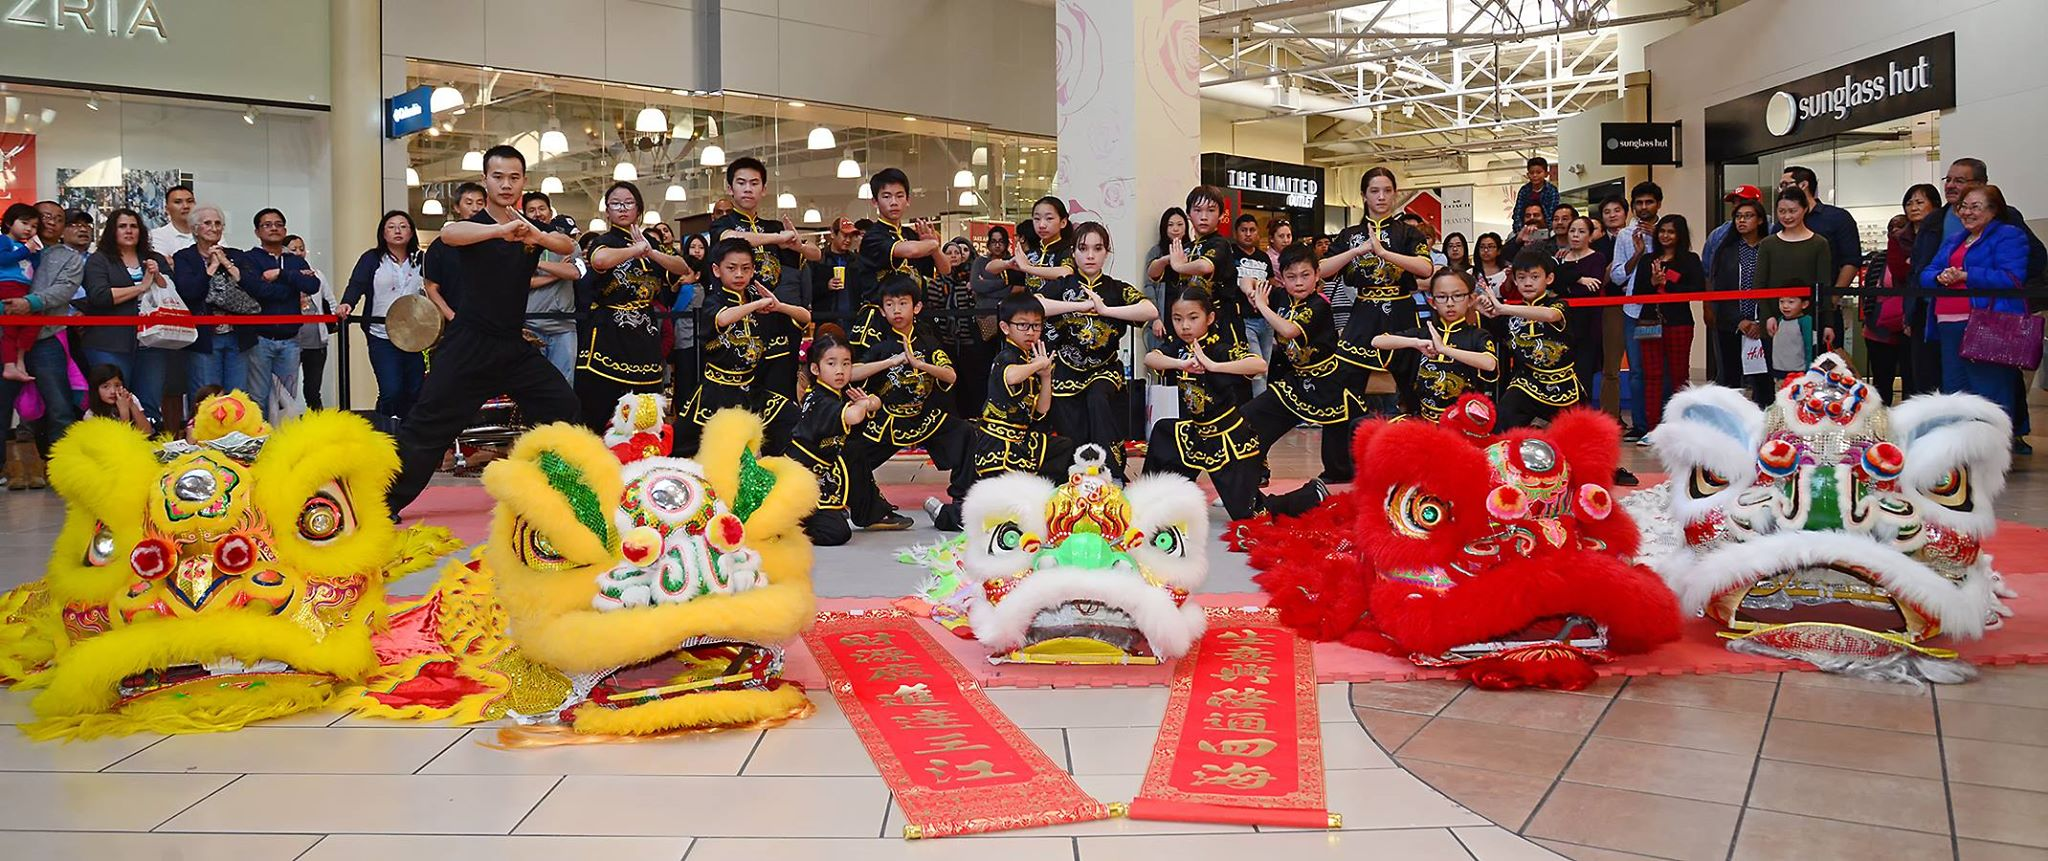 Kungfu Dragon USA_GreatMall2016